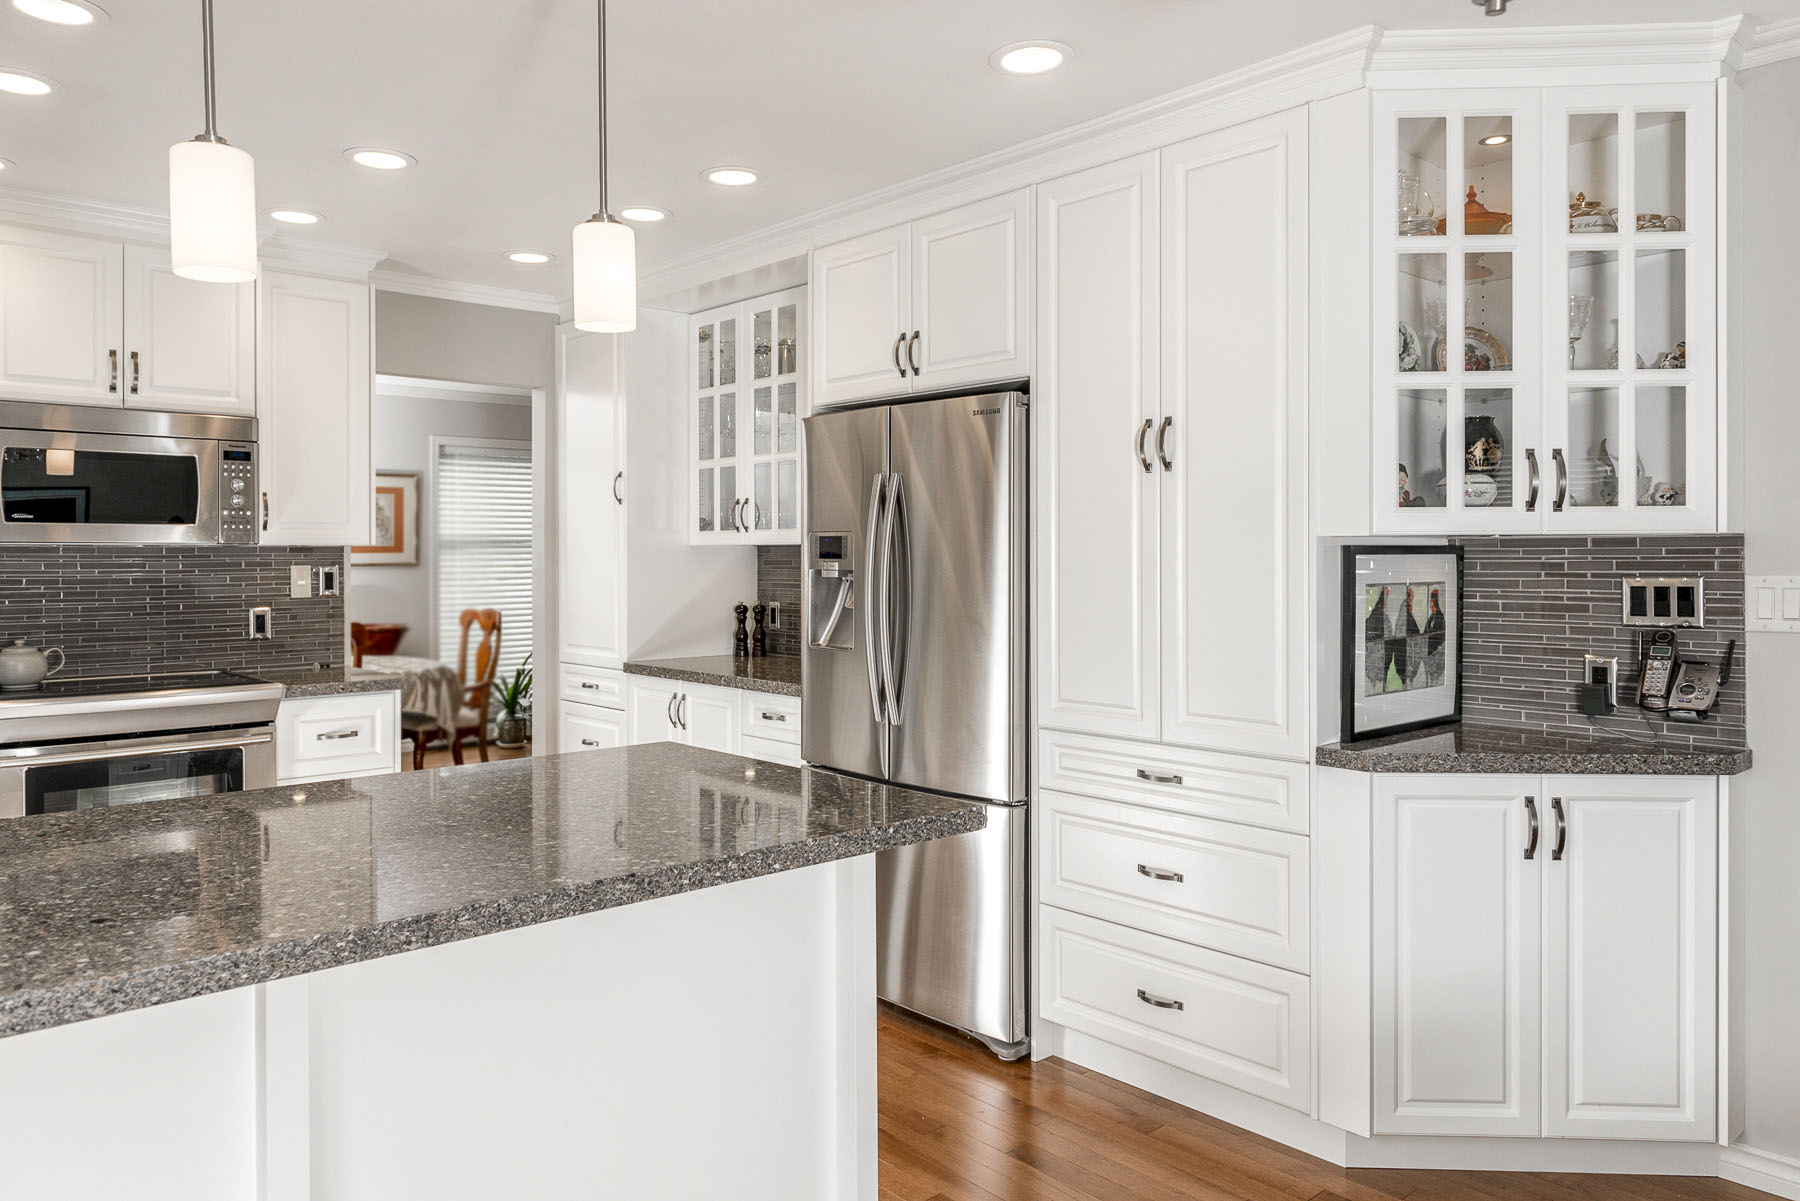 Trillium Place Coquitlam Home Kitchen And Bathroom Renovation And Remodelling Services In